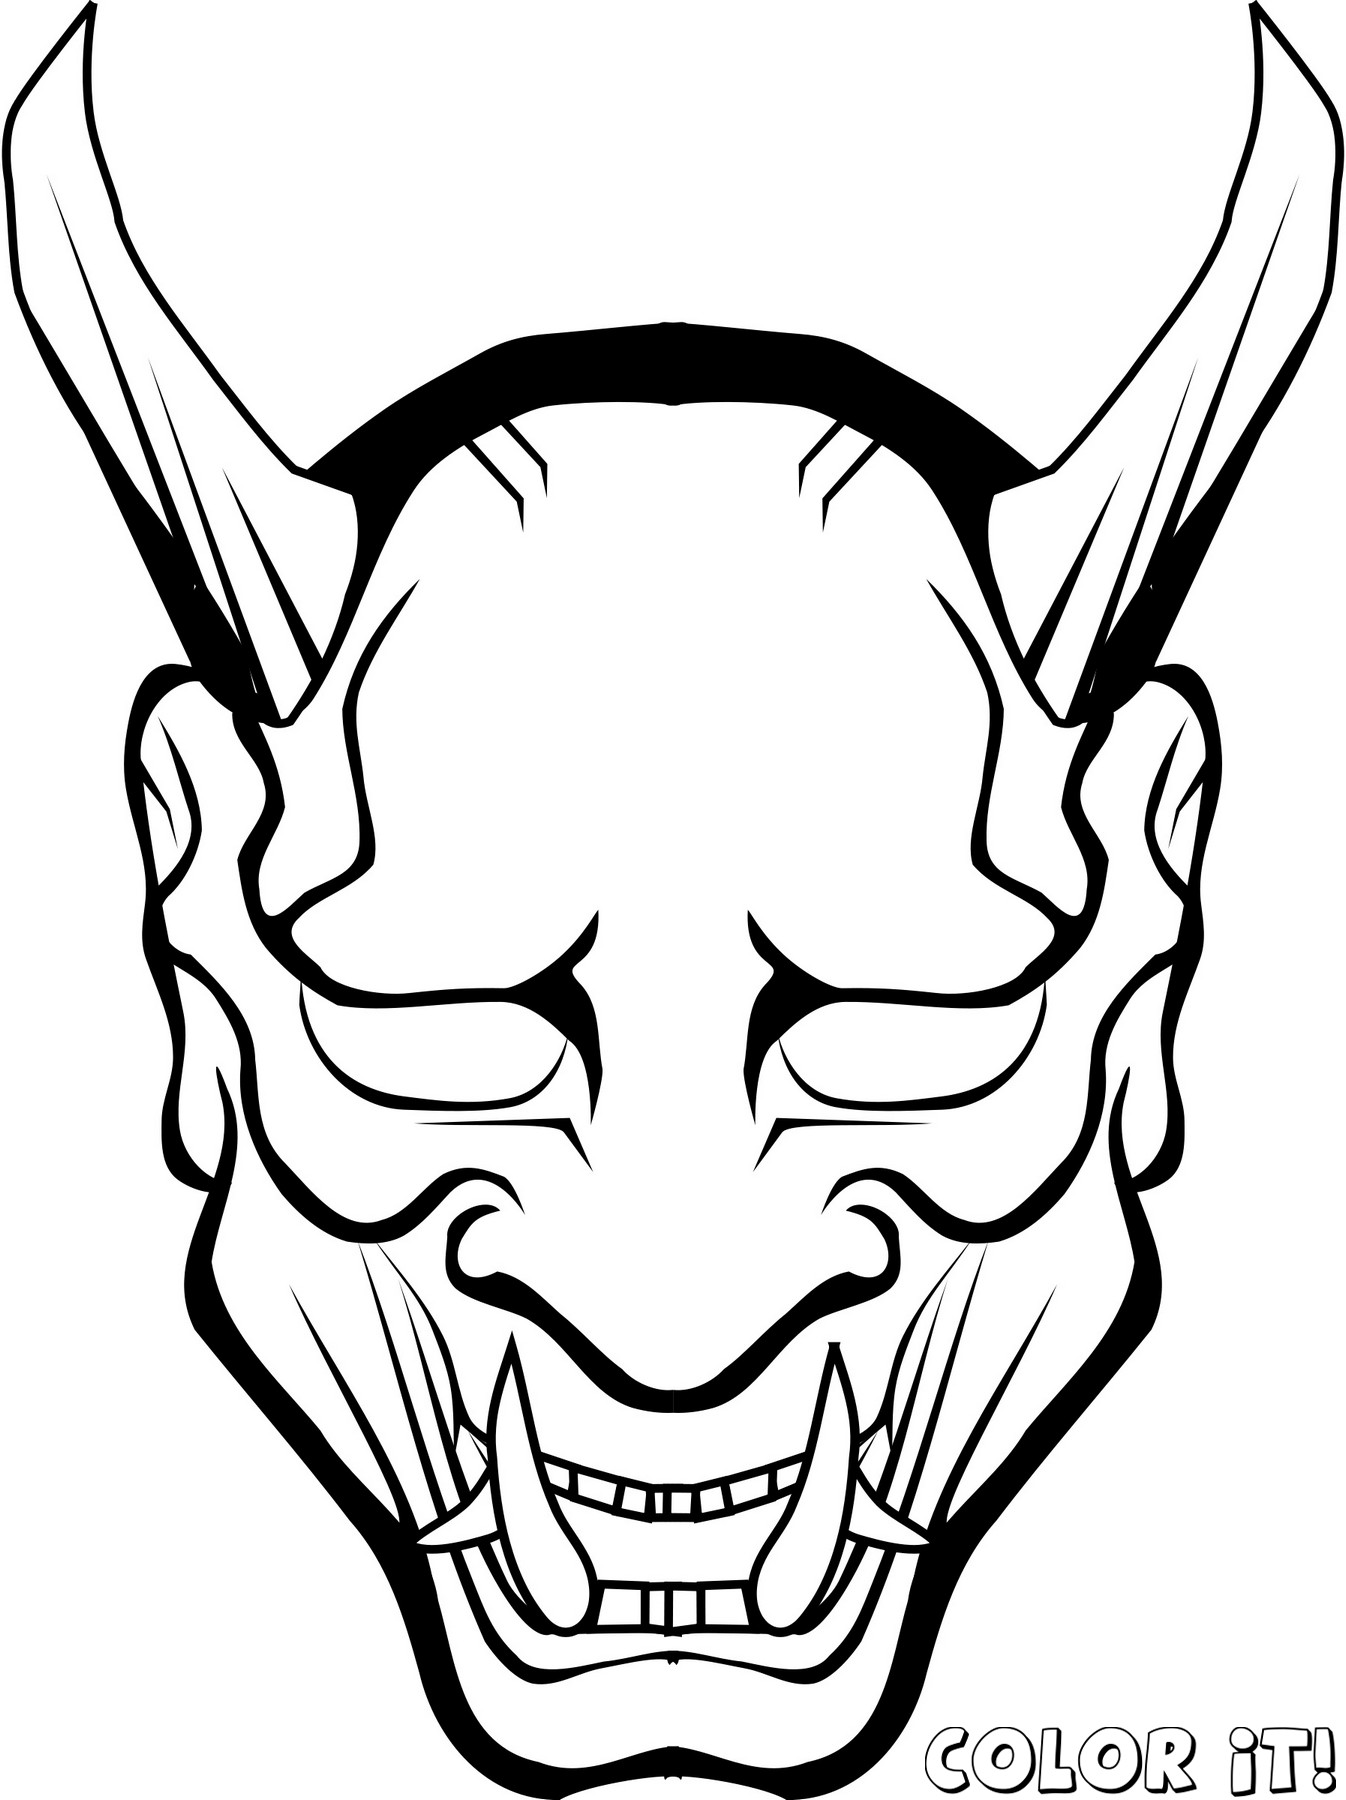 Coloring Pages Coloring Pages Masks masks coloring pages futpal com free printable mask for kids